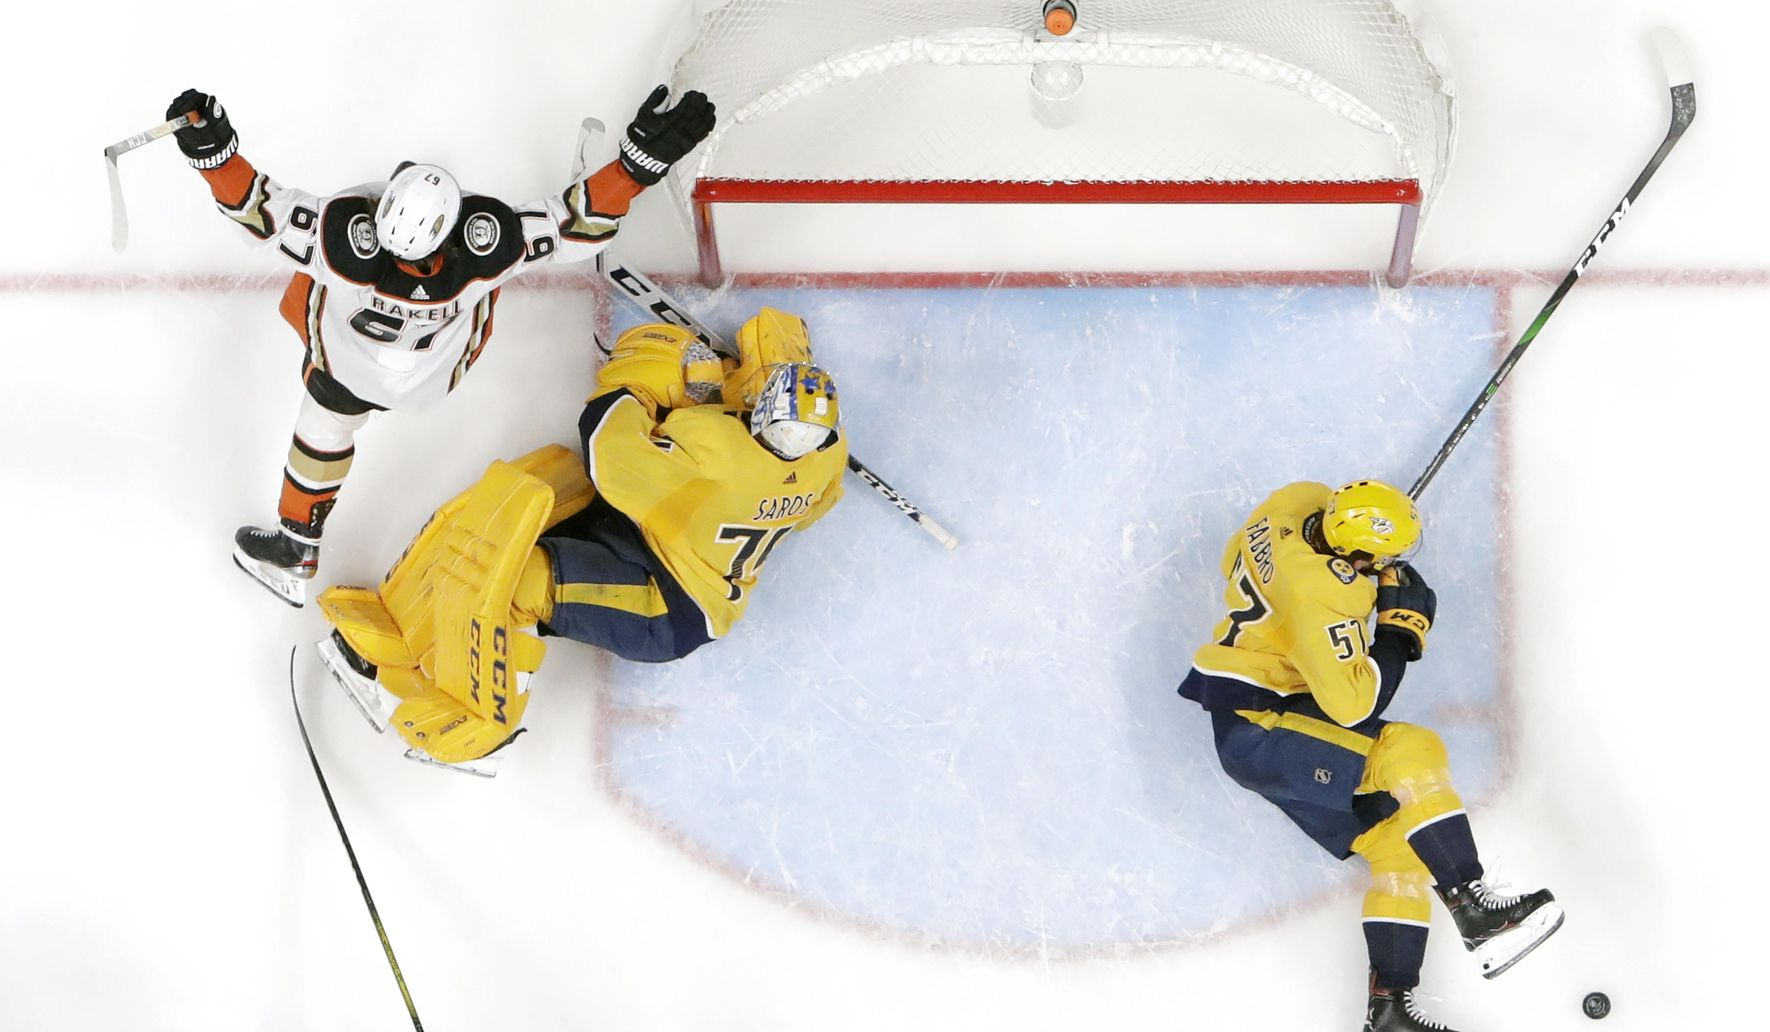 Ducks_predators_hockey_49107_c0-229-5472-3419_s1770x1032